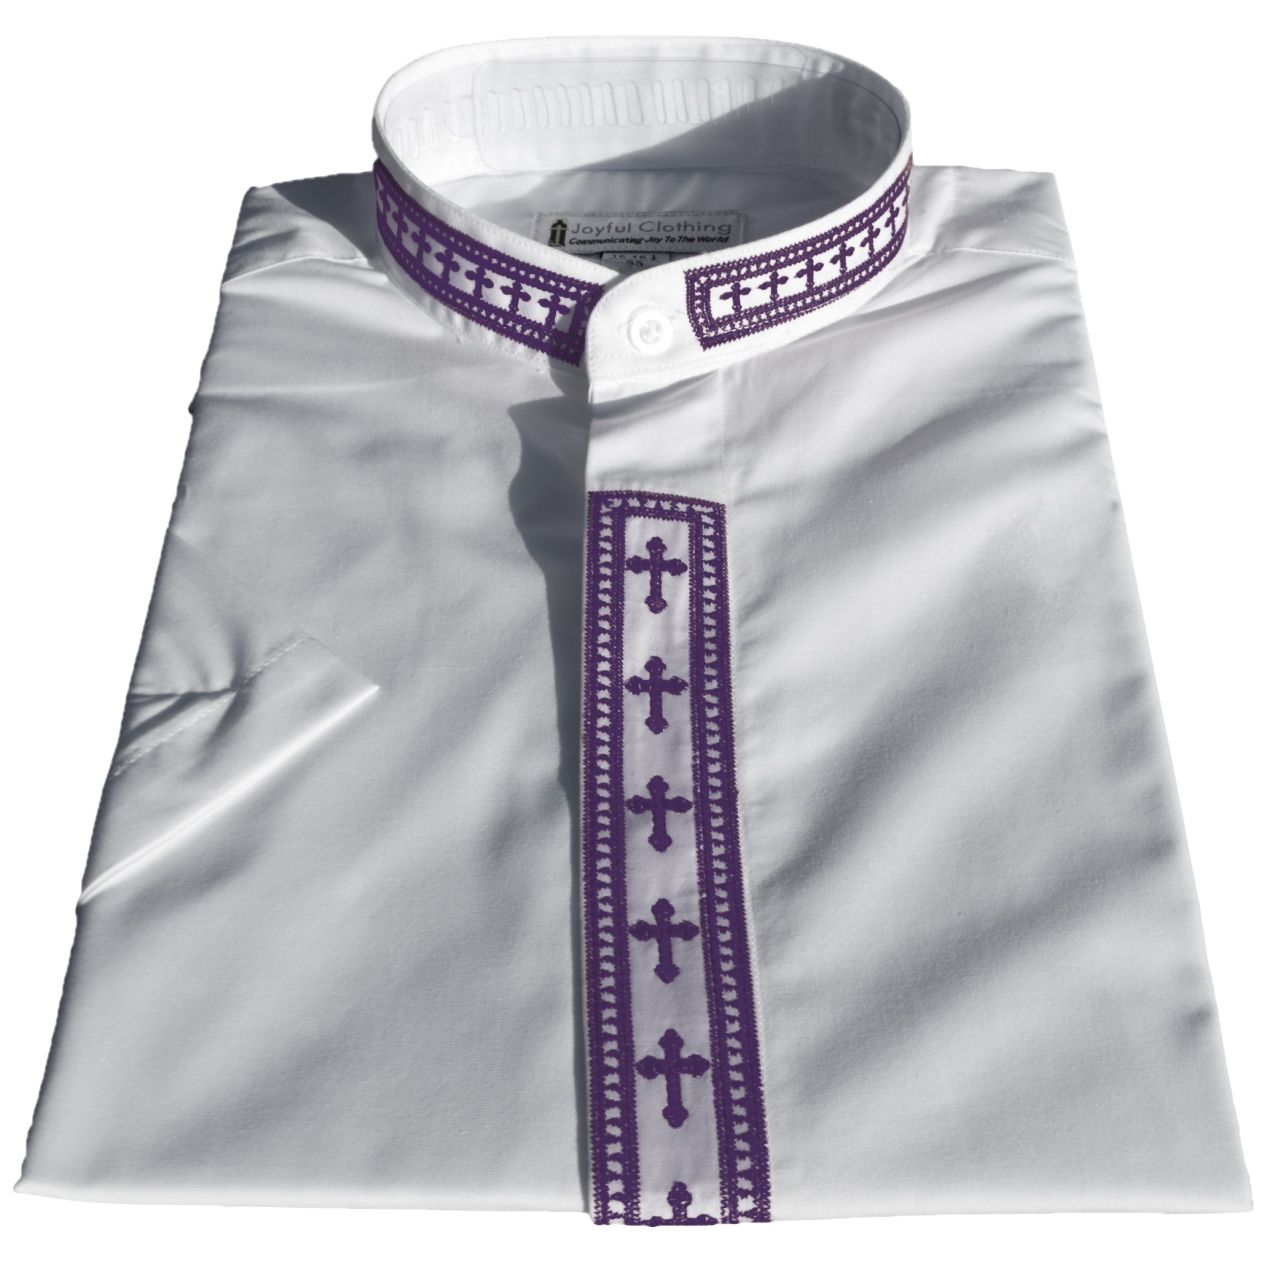 767. Women's Short-Sleeve Clergy Shirt With Fine Embroidery - White/Purple